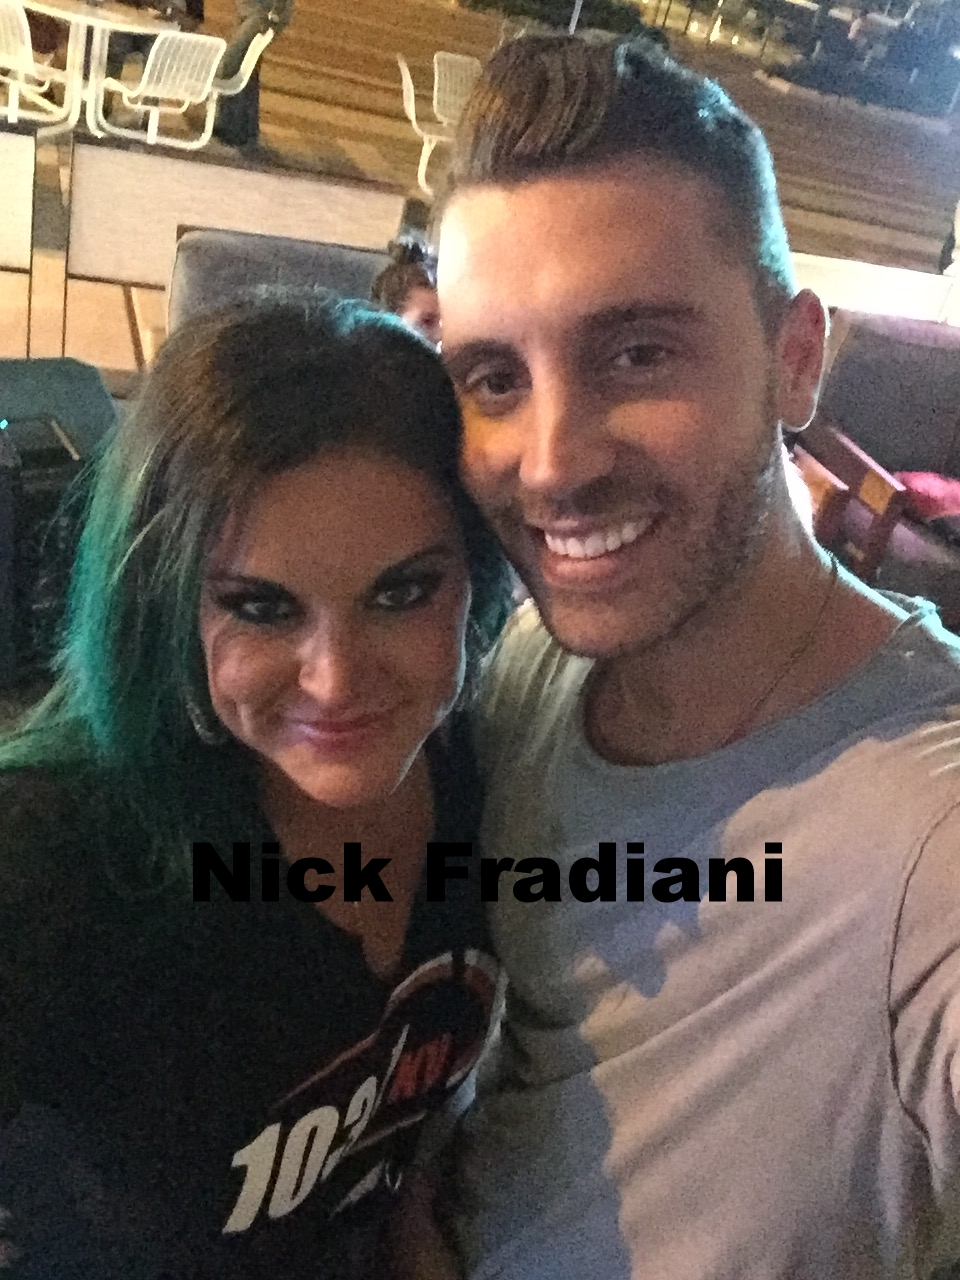 Nick Fradiani.JPG